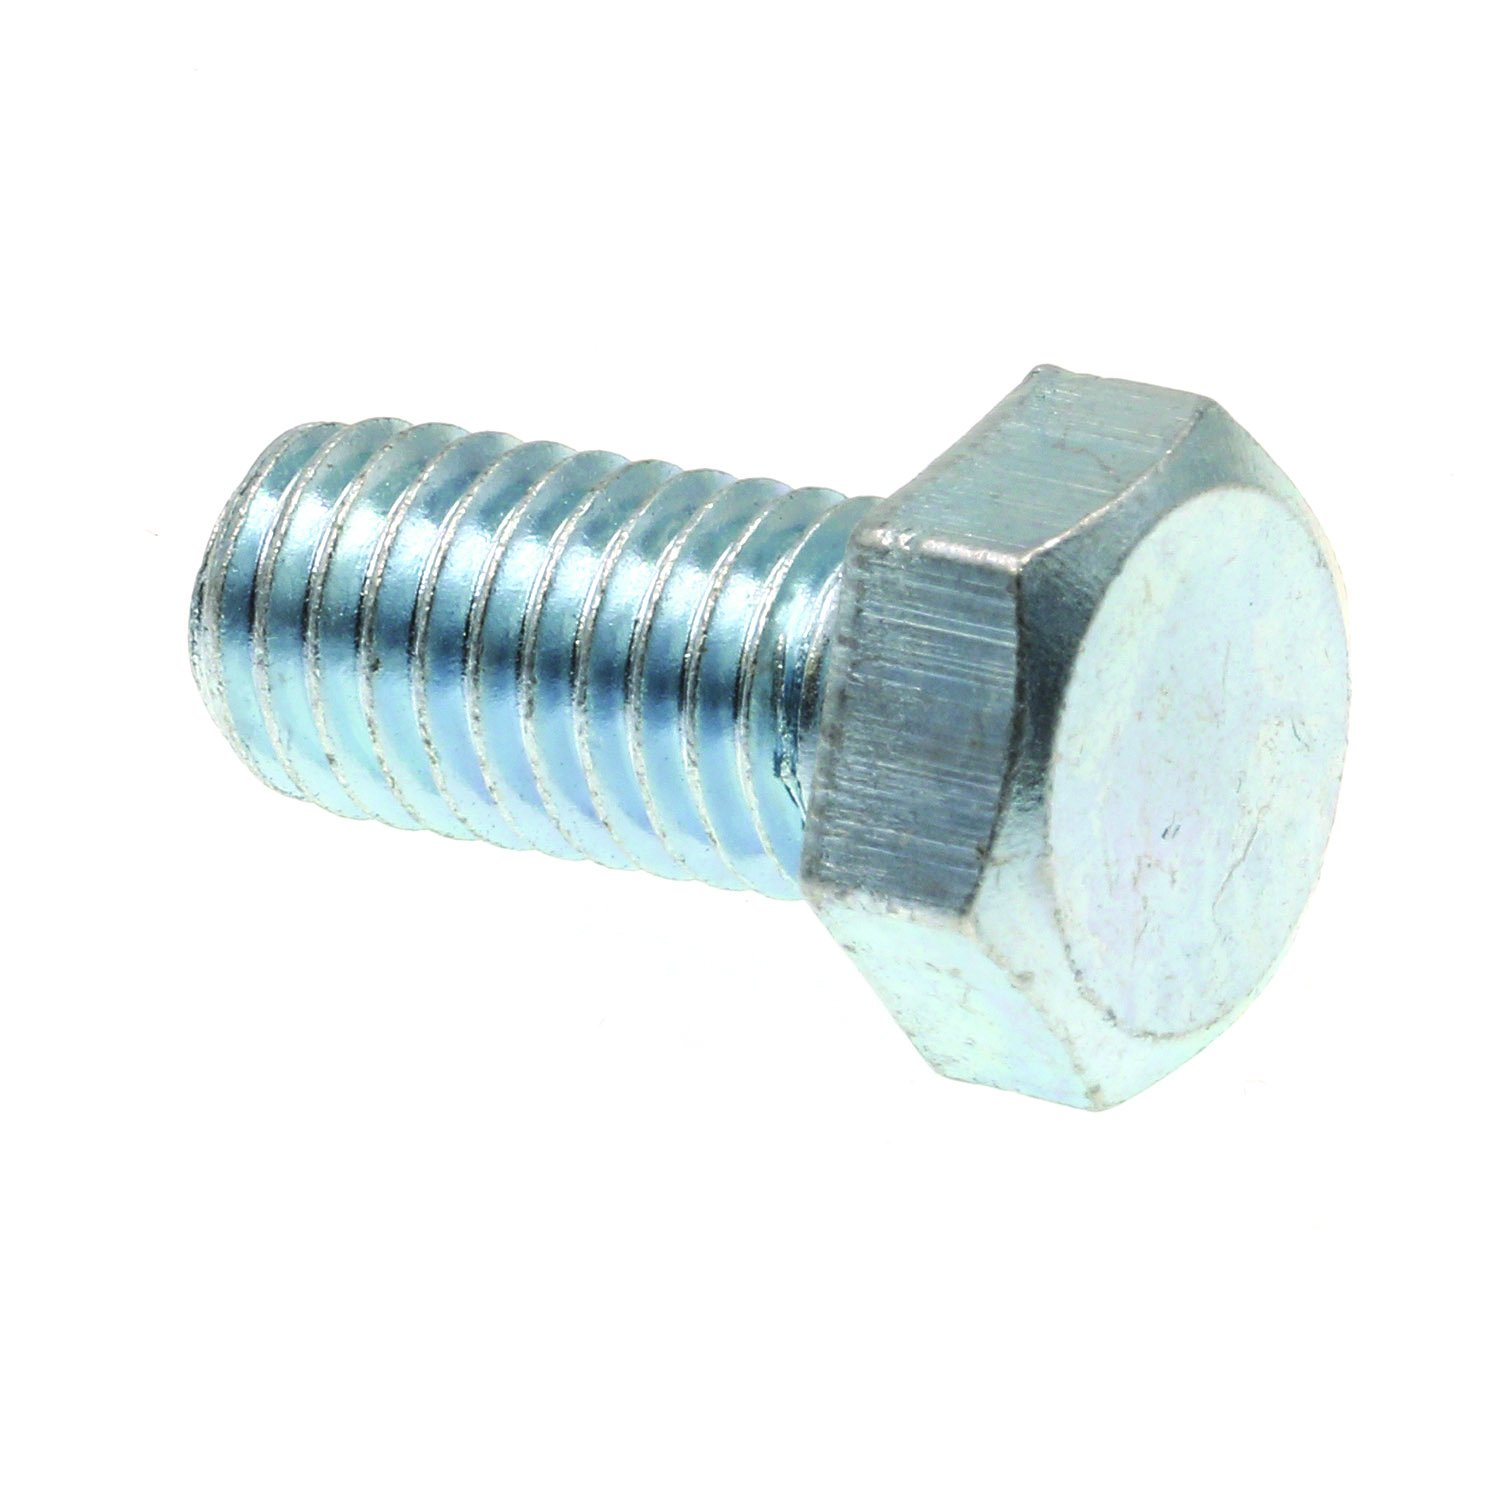 Prime Line 9060322 Hex Bolts 1 2 in. 13 X 1 in. A307 Grade A Zinc Plated Steel 25 Pack